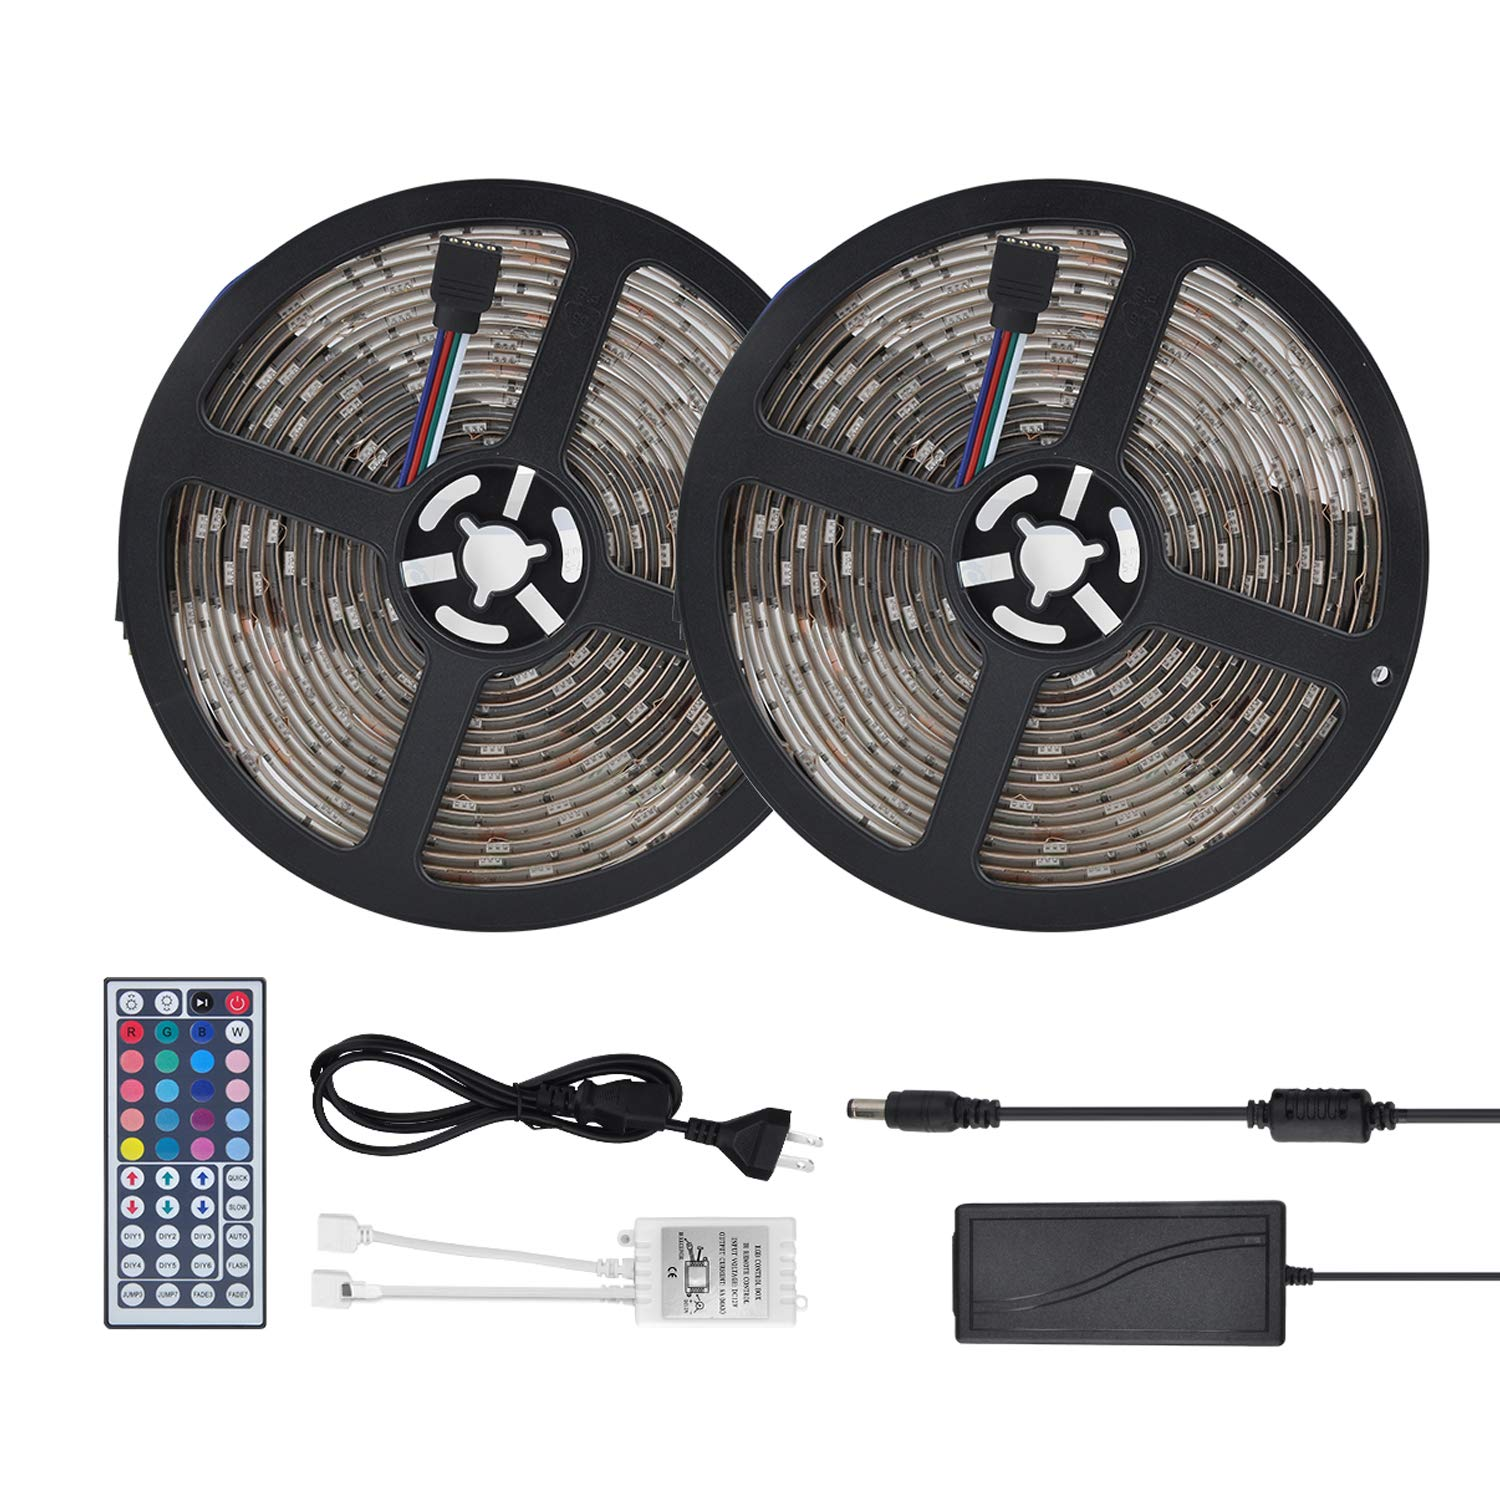 Waterproof LED Strip Lights 32.8ft (10m) RGB 300LEDs Color Changing 5050 Dimmable Multicolored LED Lights Kit with 44key Remote for Ceiling Bar Counter Cabinet Lighting by YUNSHANGAUTO